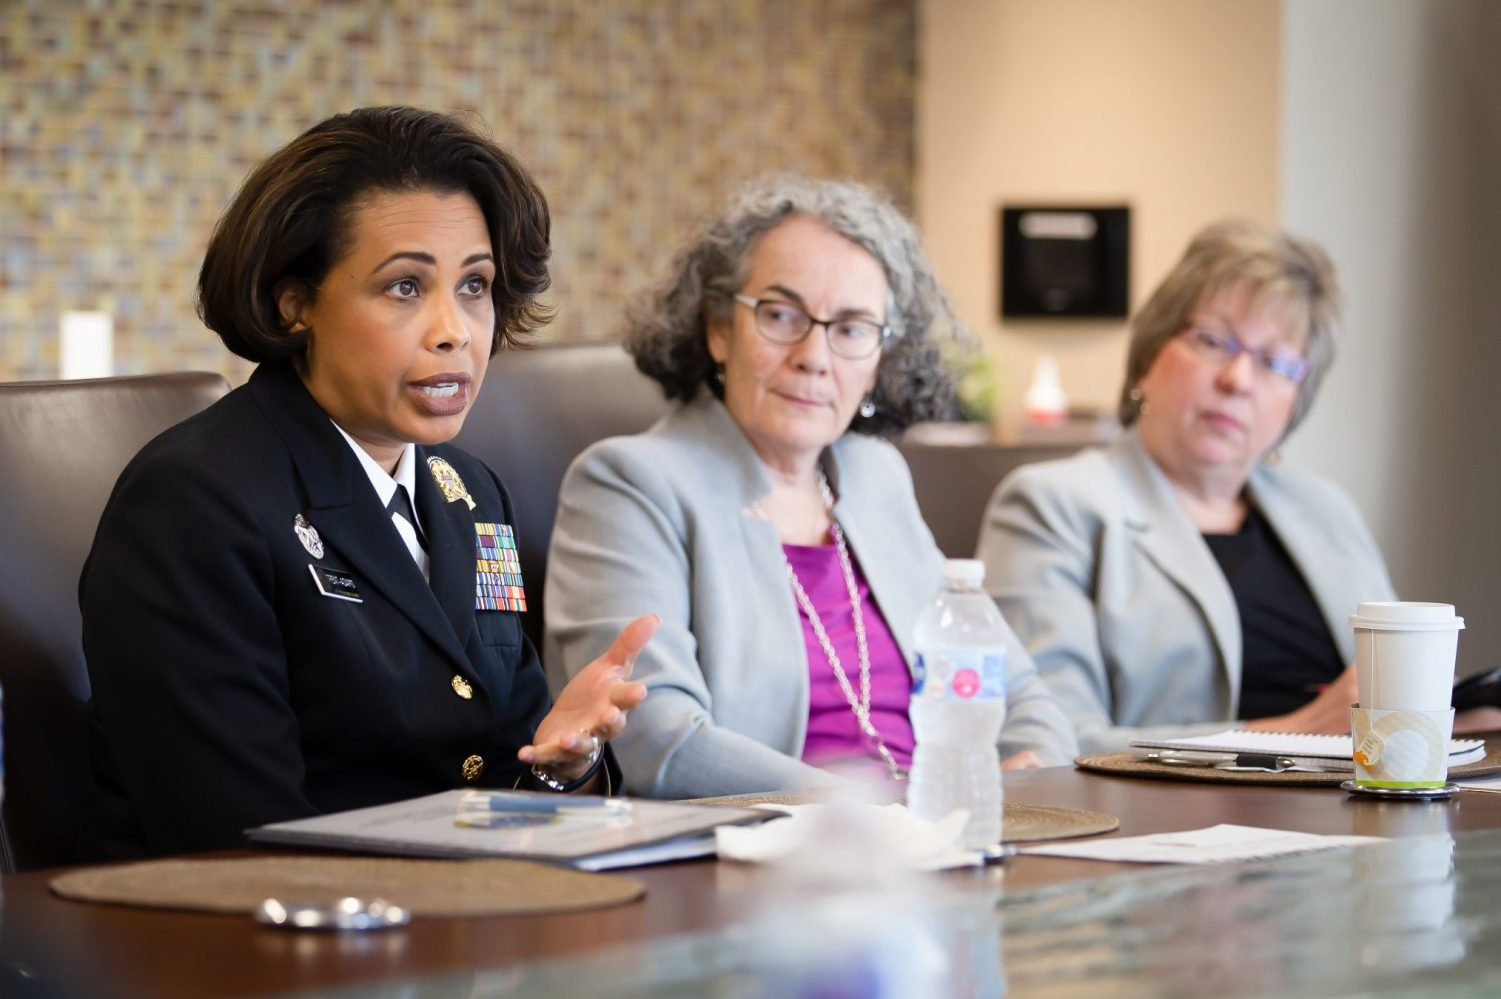 Rear Admiral Trent Adams presents her research at the School of Nursing